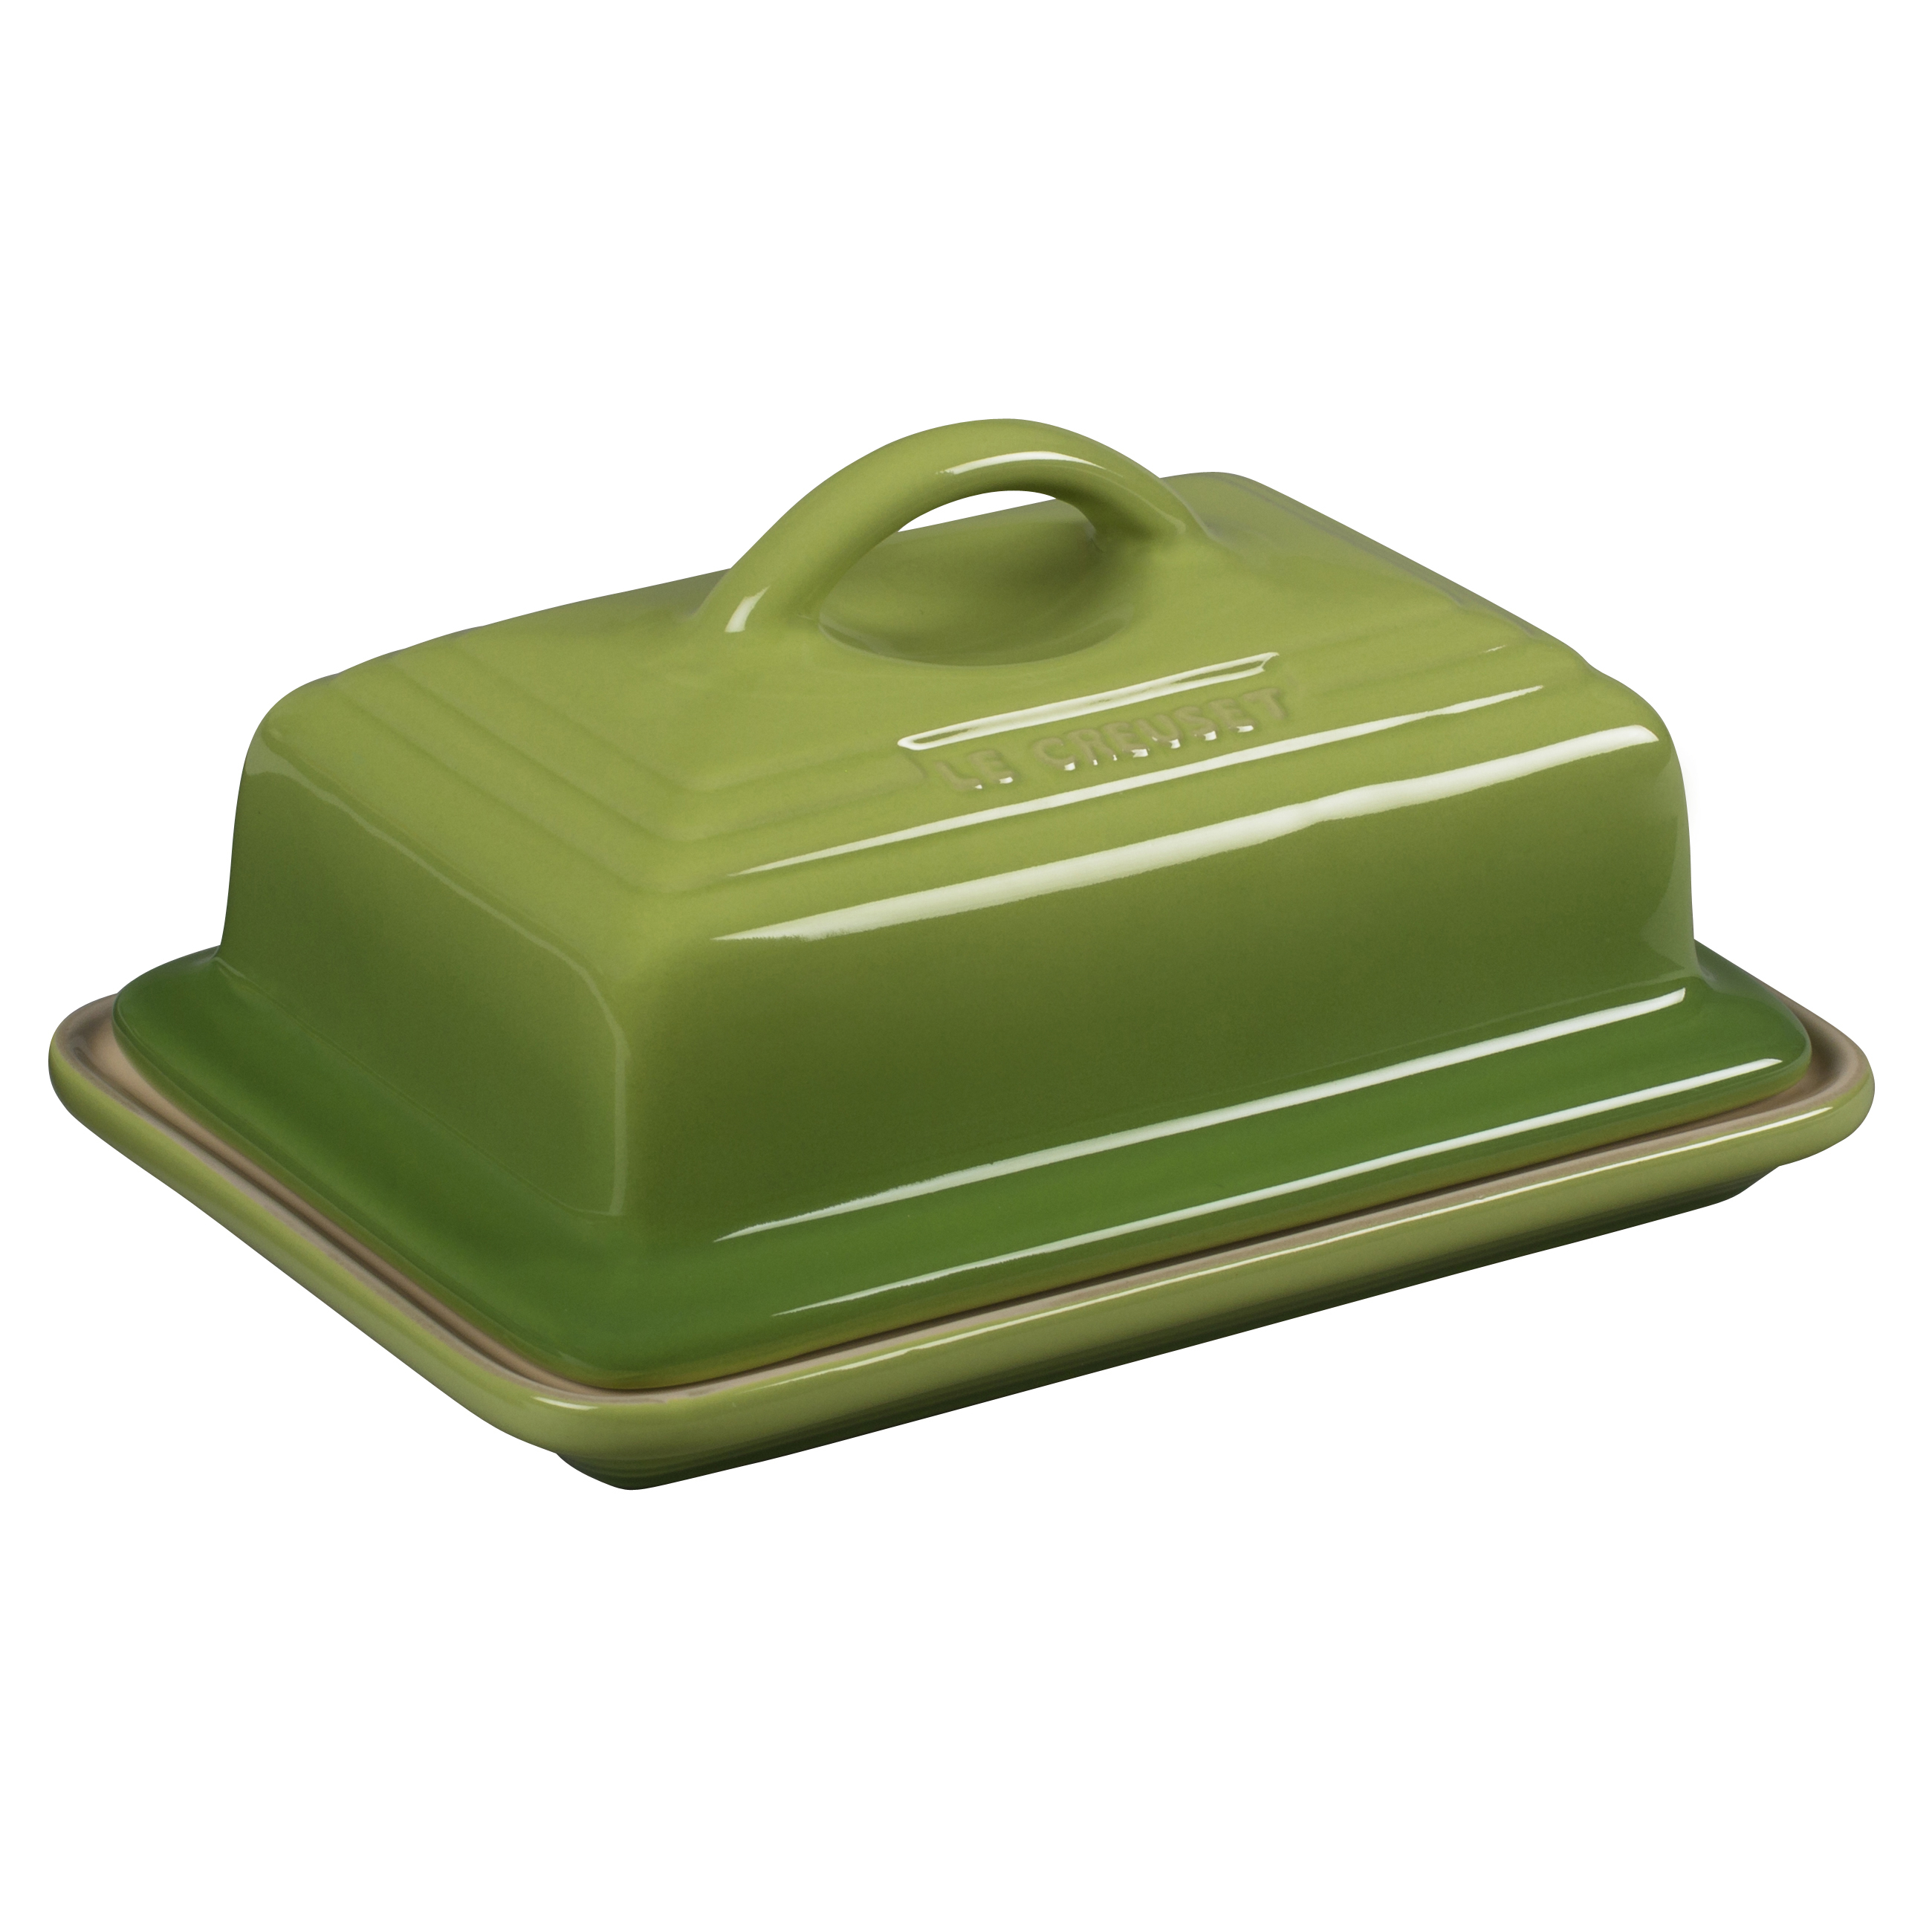 Le Creuset Heritage Palm Stoneware Butter Dish